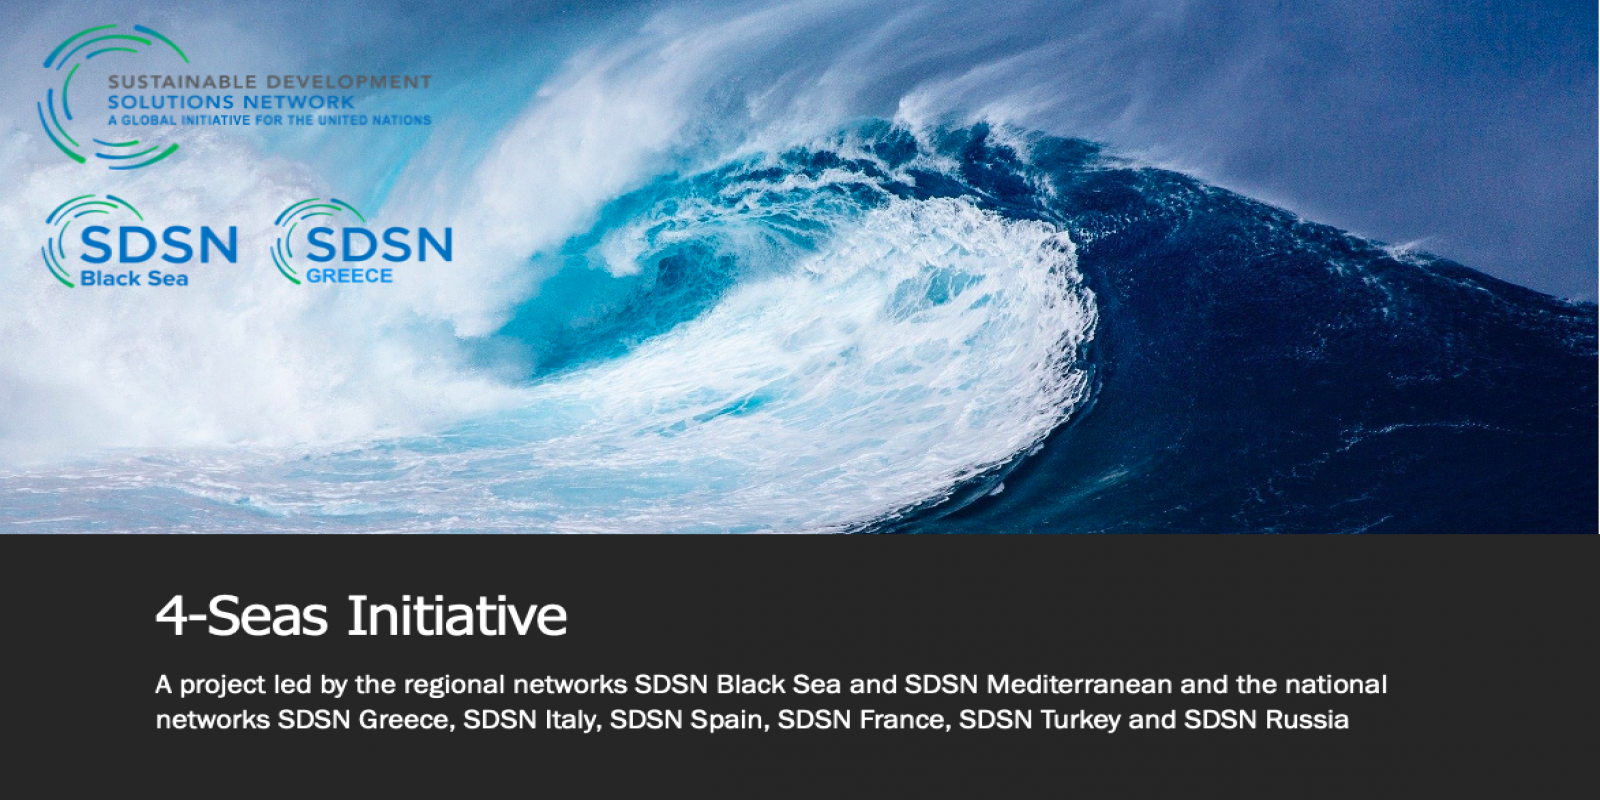 The UN SDSN 4-Seas Initiative